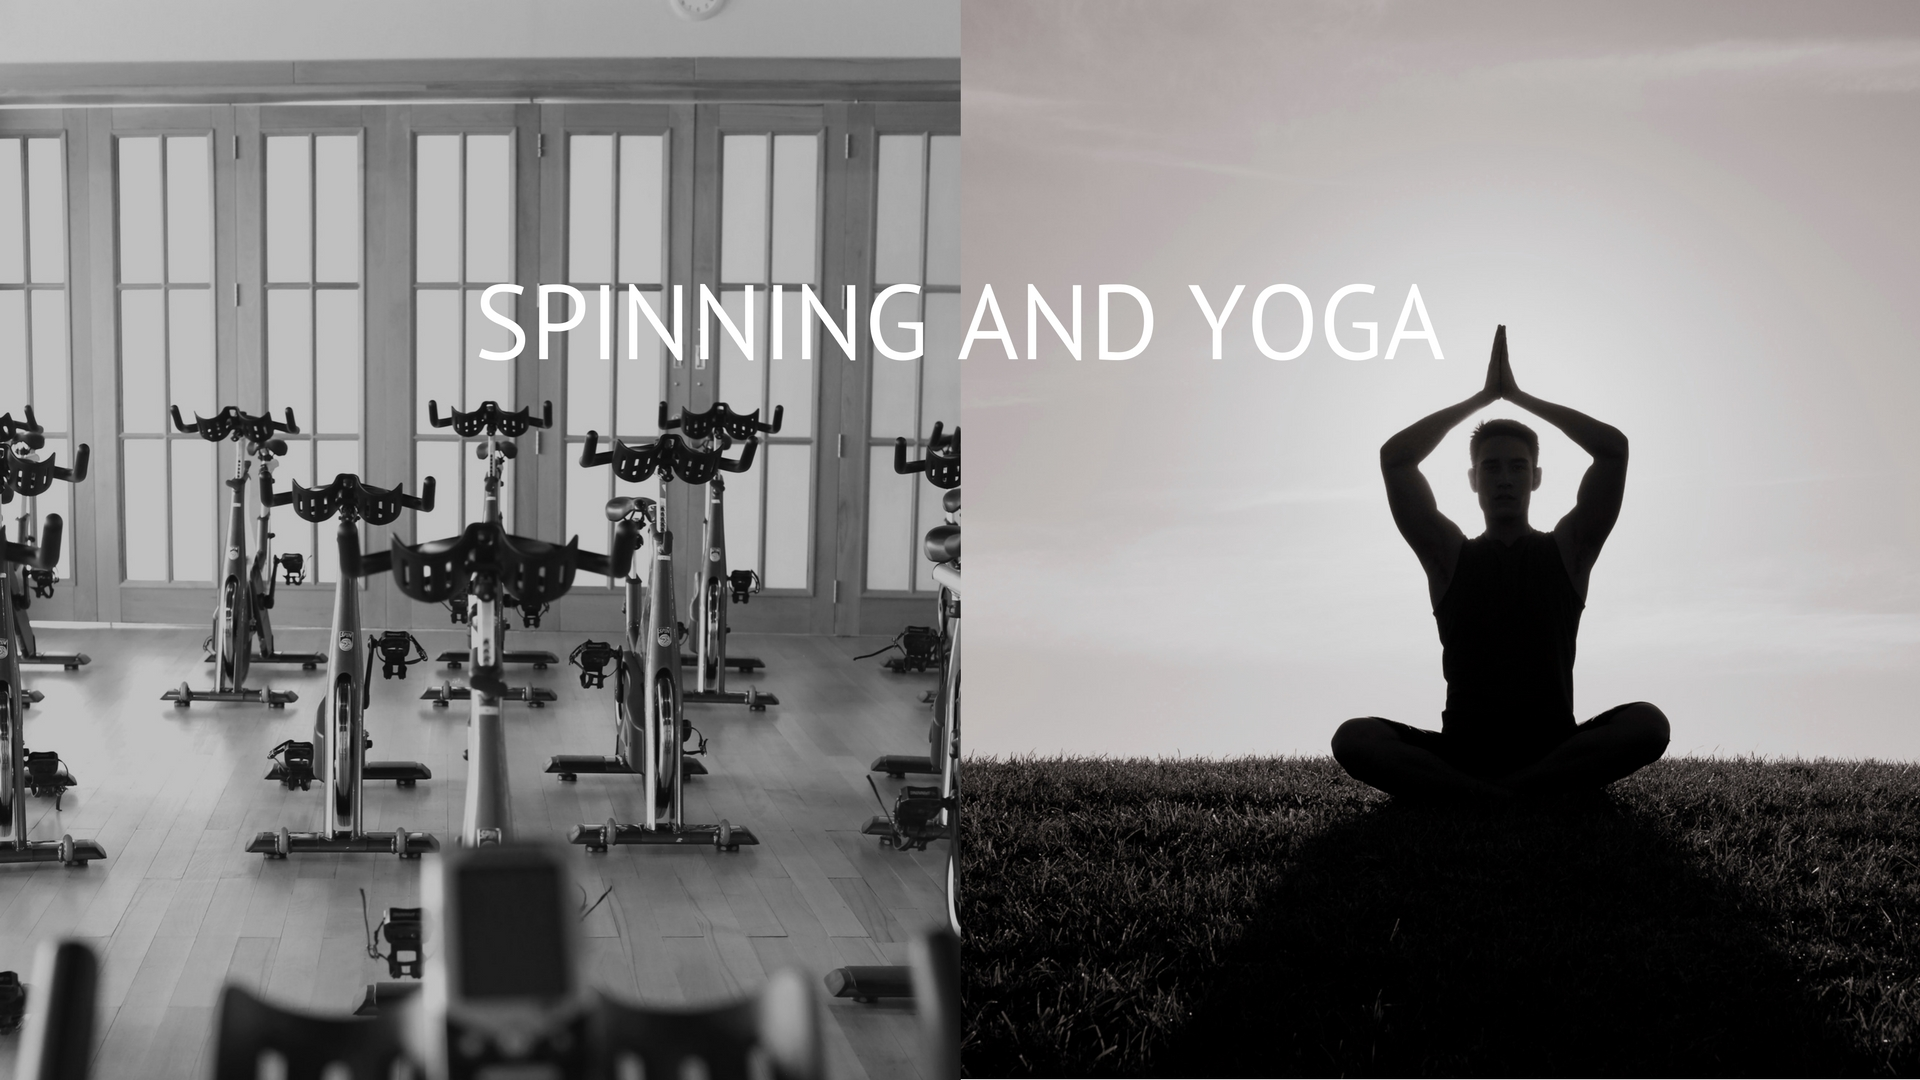 Spinning and Yoga